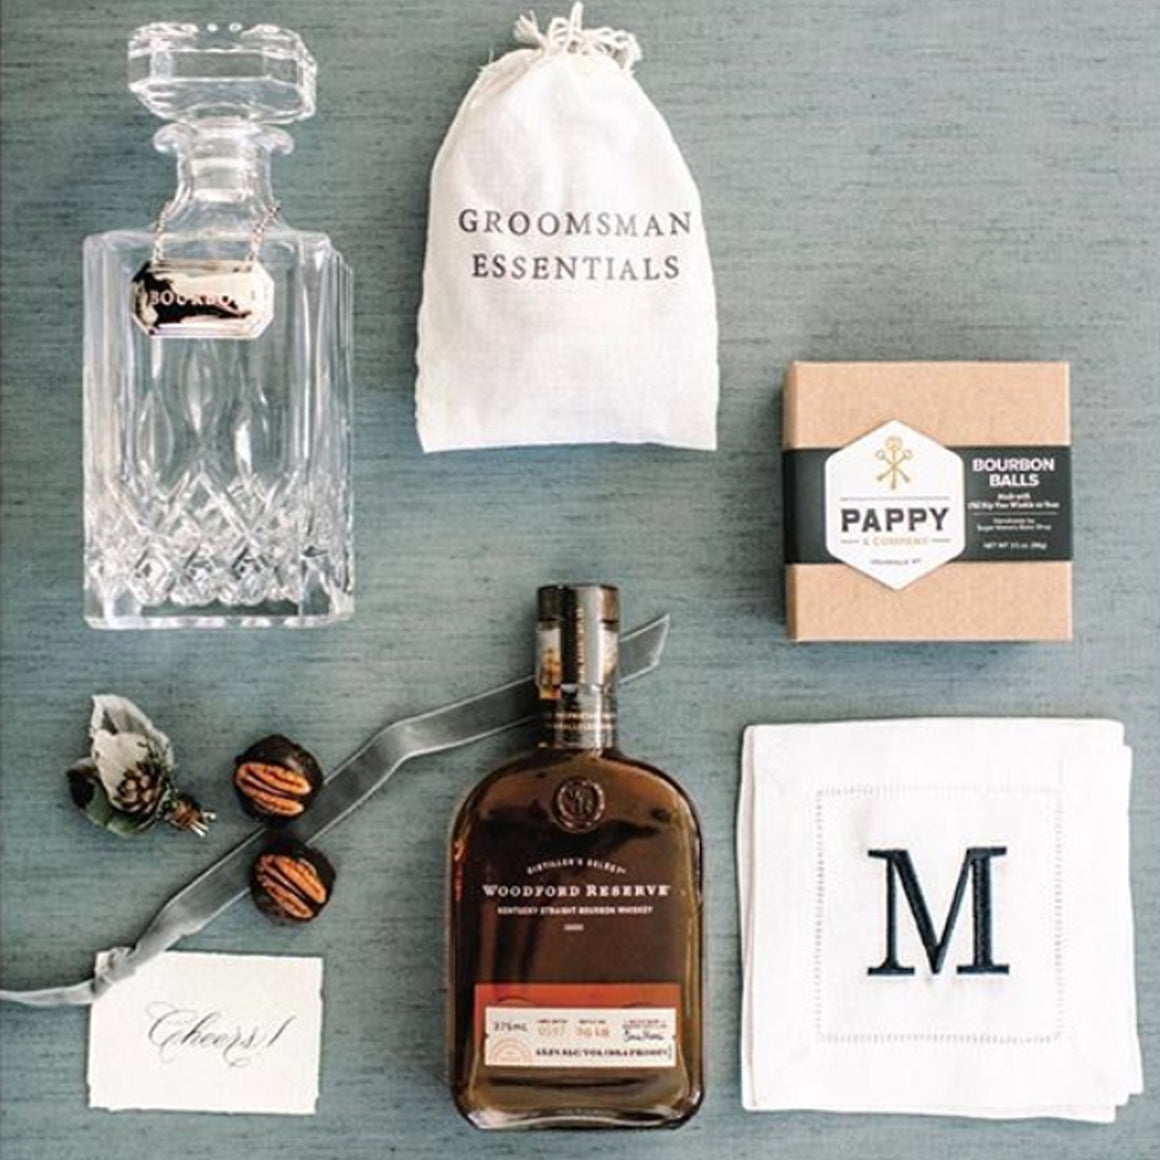 For the Groom or Groomsmen Essentials Kit